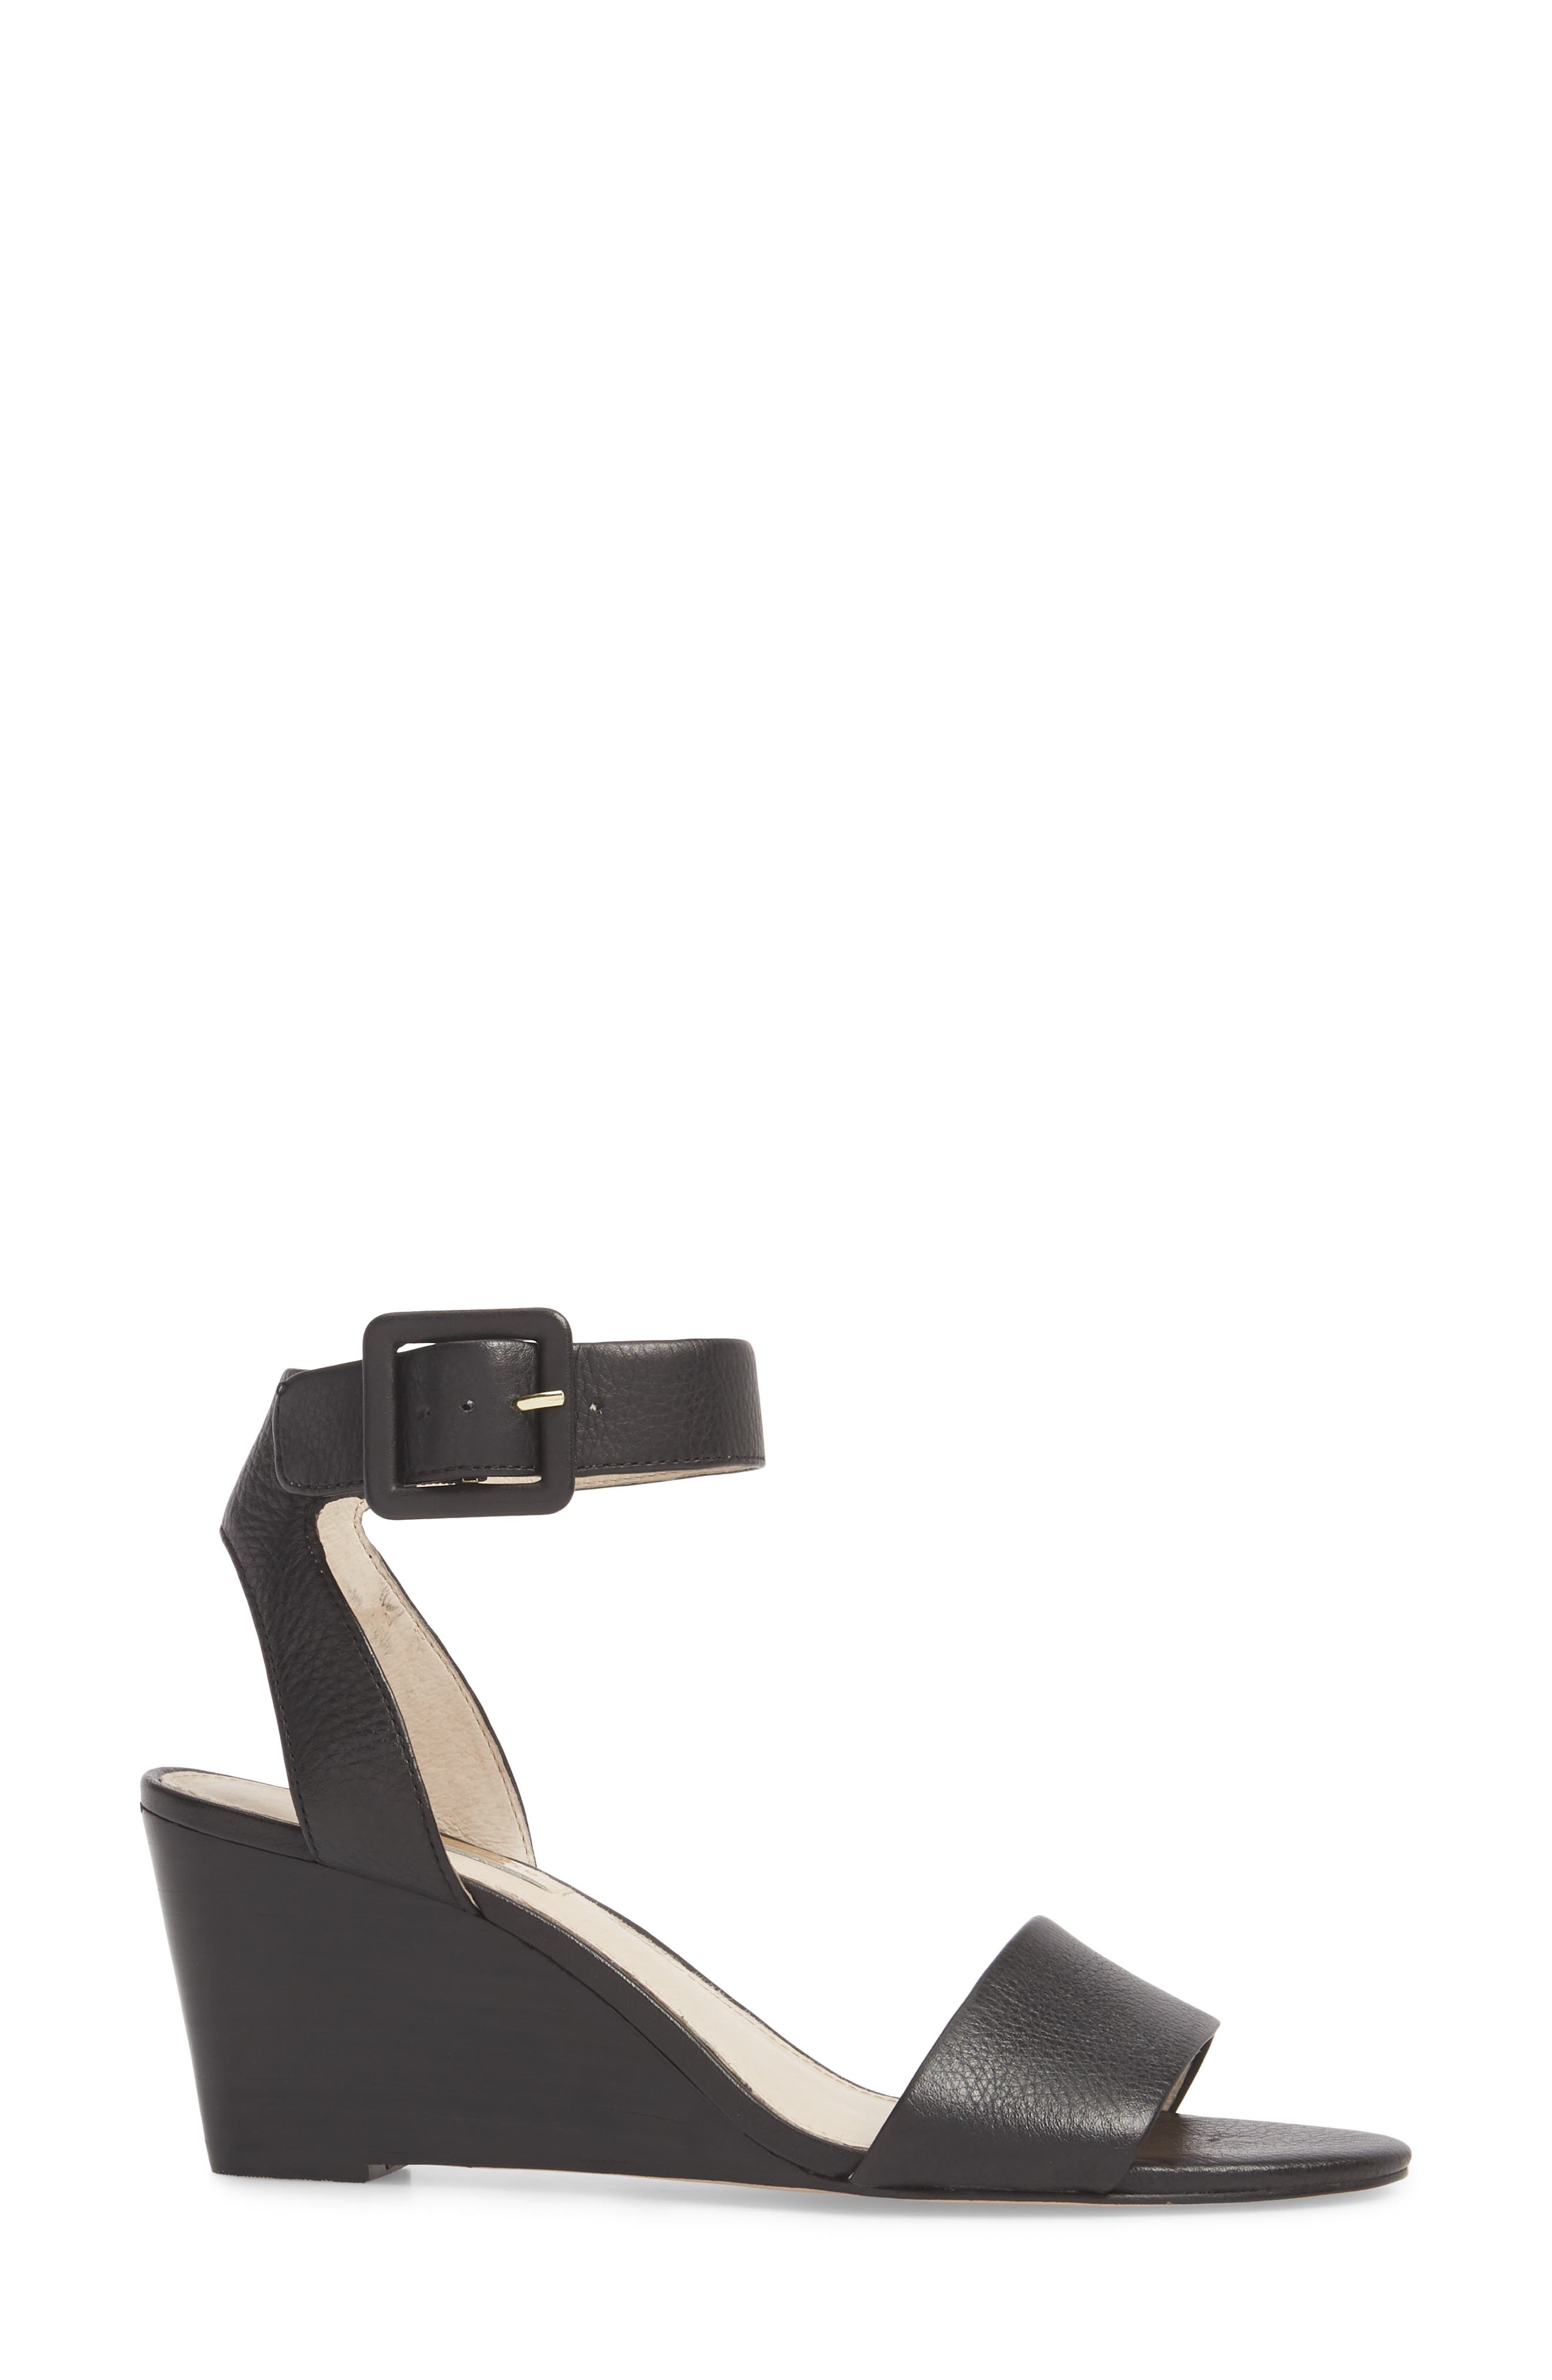 LOUISE ET CIE, Punya Wedge Sandal, Alternate thumbnail 3, color, BLACK LEATHER